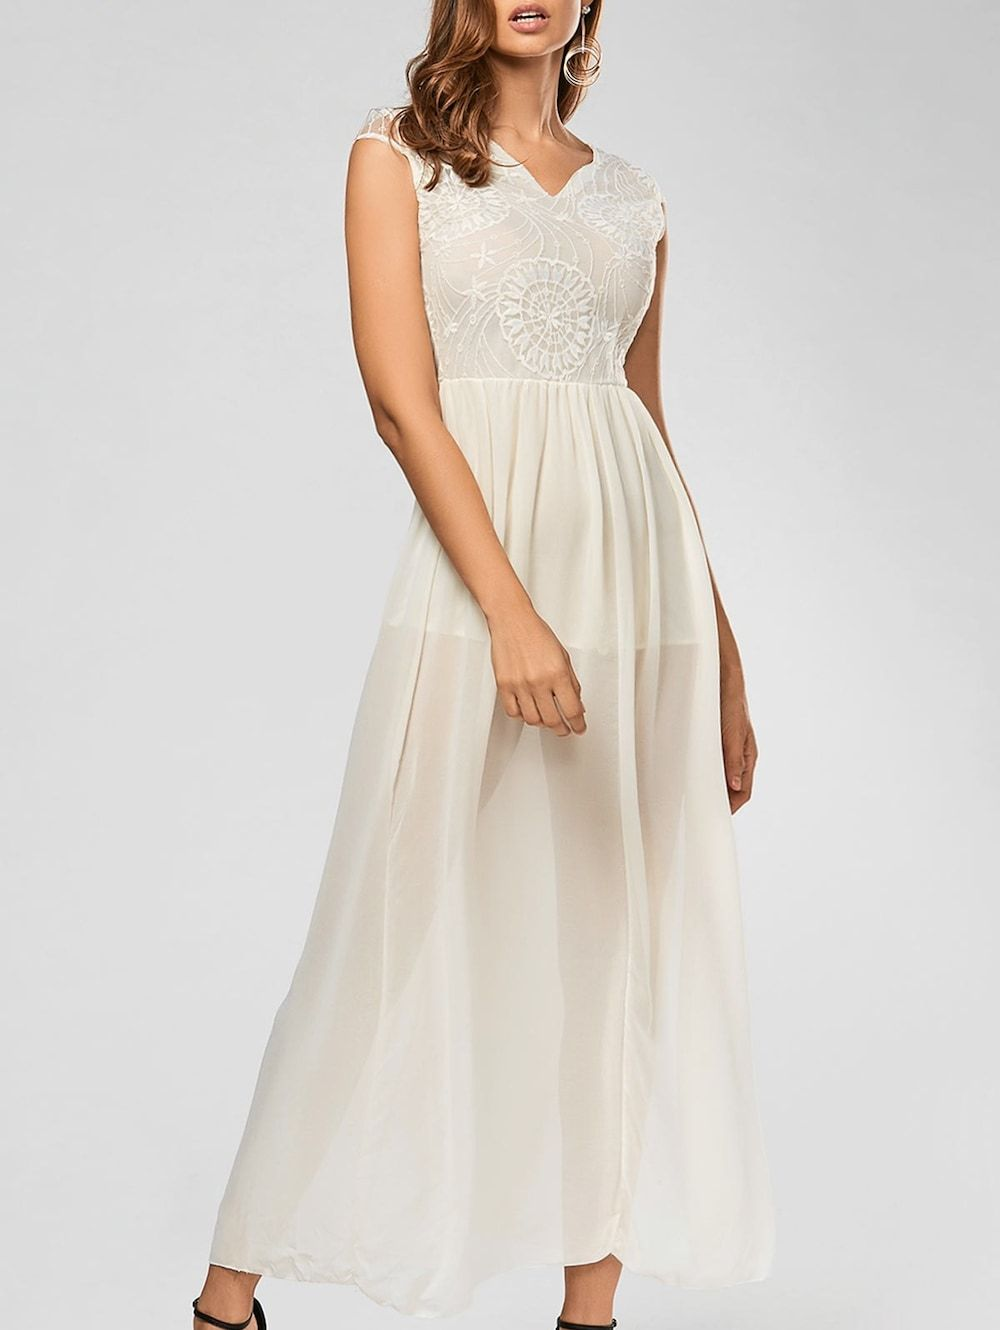 238694a9dfbe Elegant Women's Plunging Neck Sleeveless Lace Splicing Slit Long Dress -  OFF WHITE XL